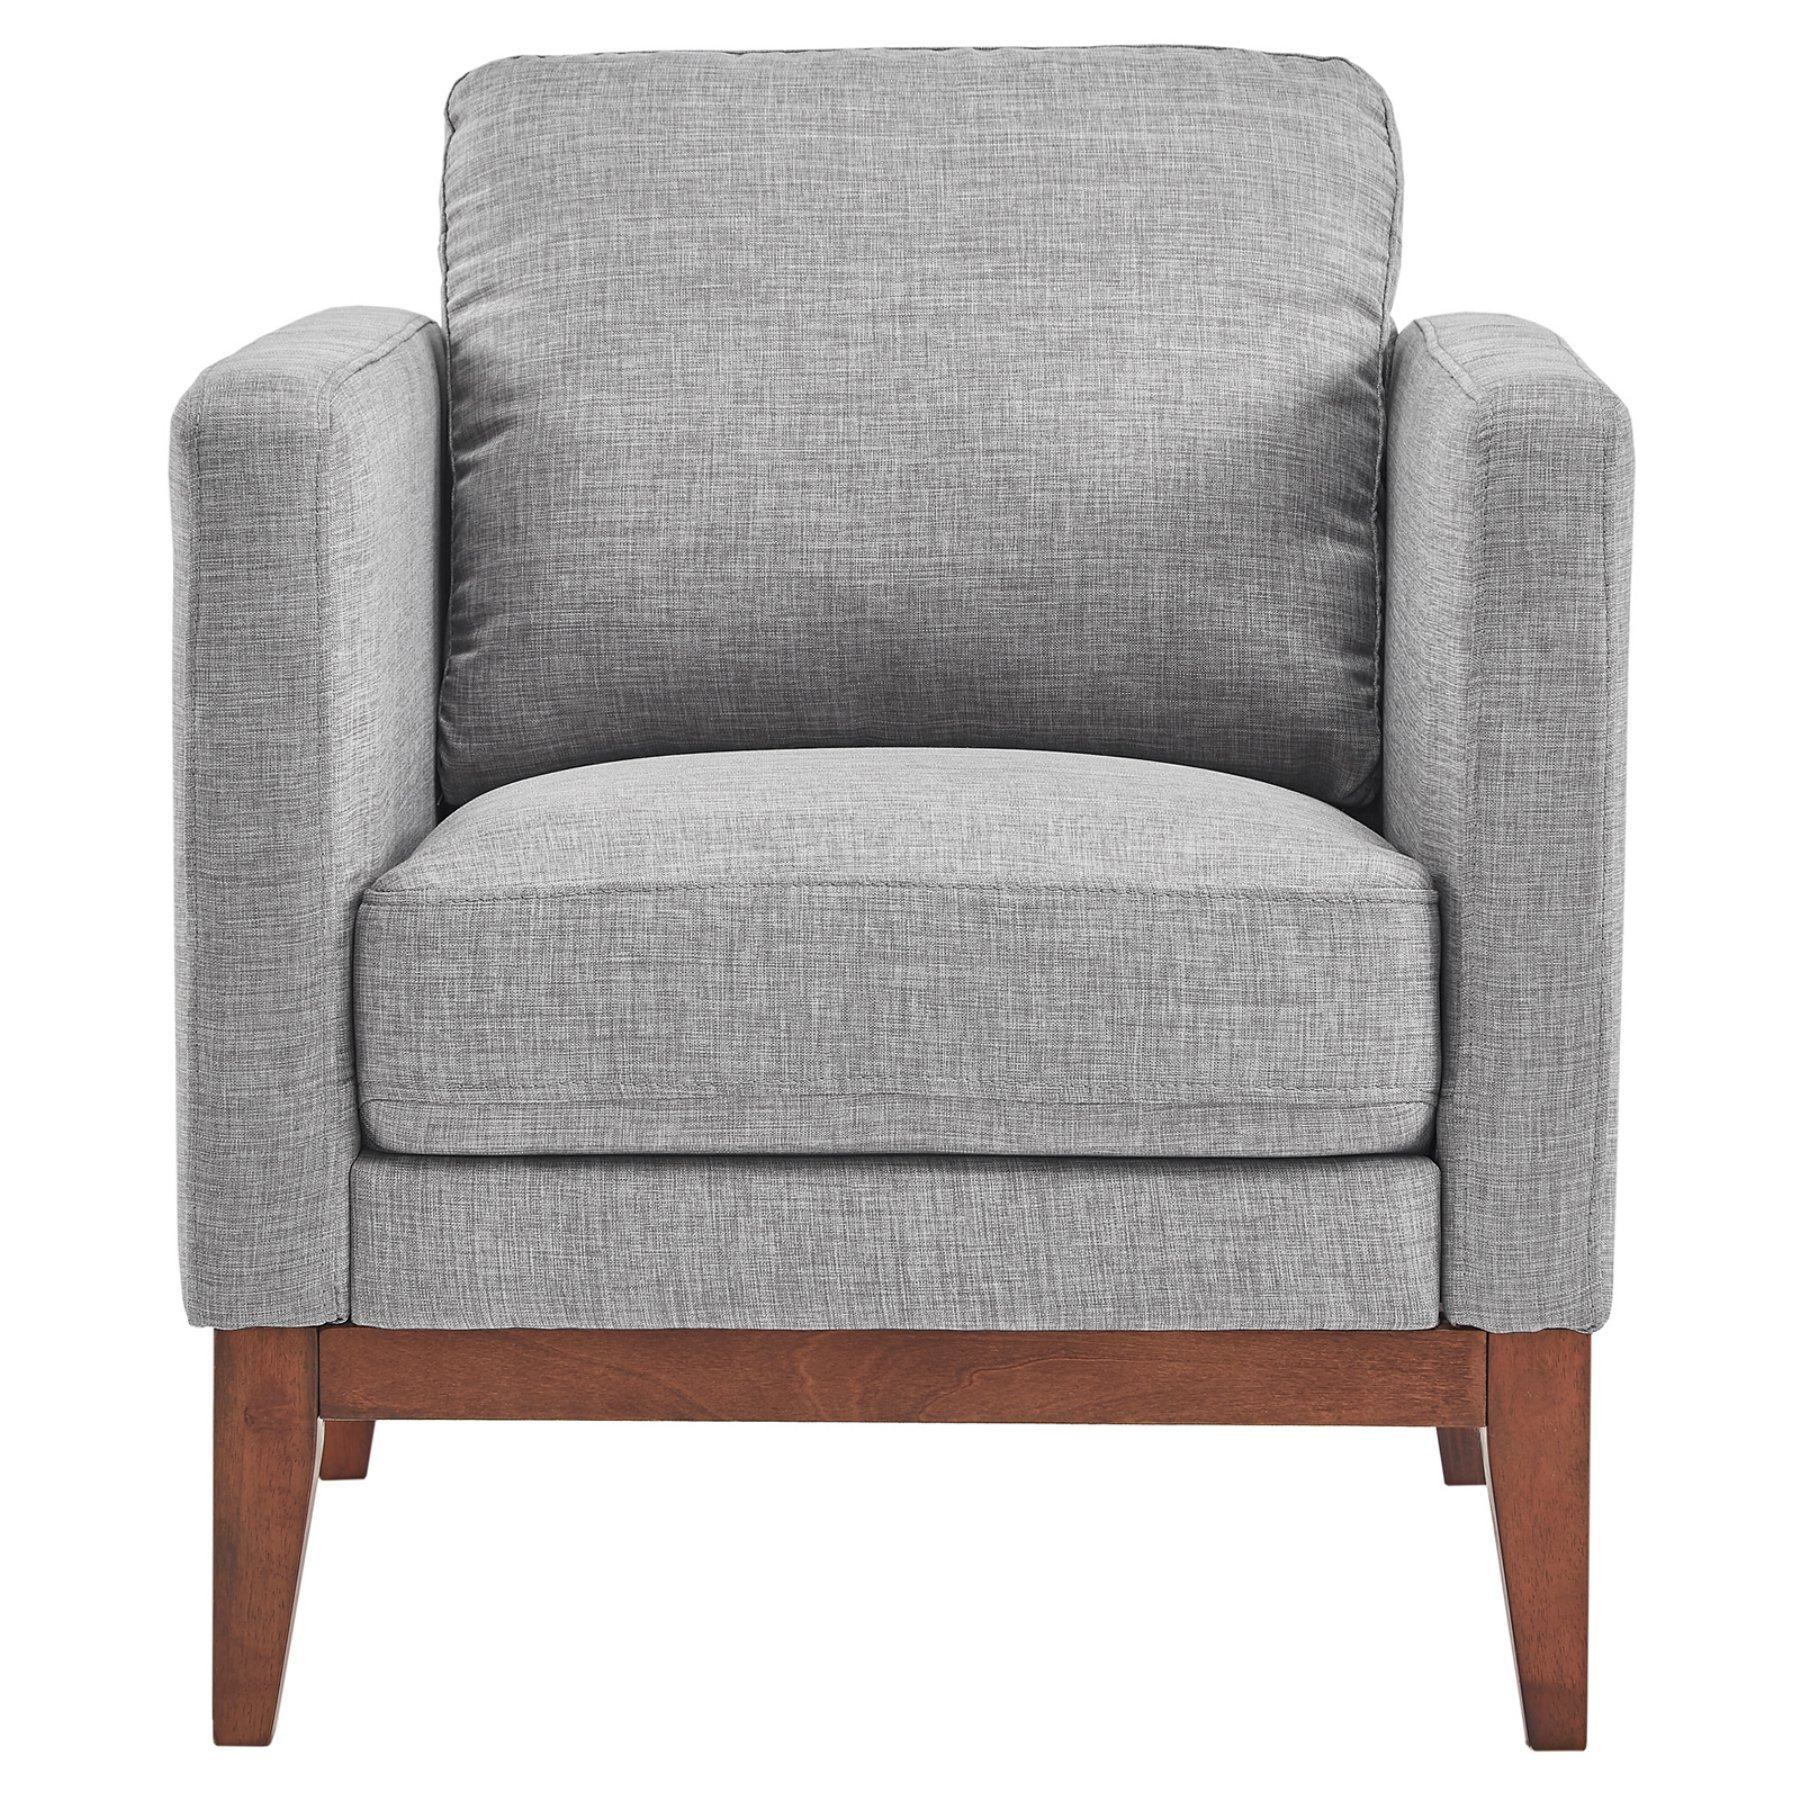 Swell Weston Home Riley Linen Upholstered Accent Chair Products Theyellowbook Wood Chair Design Ideas Theyellowbookinfo